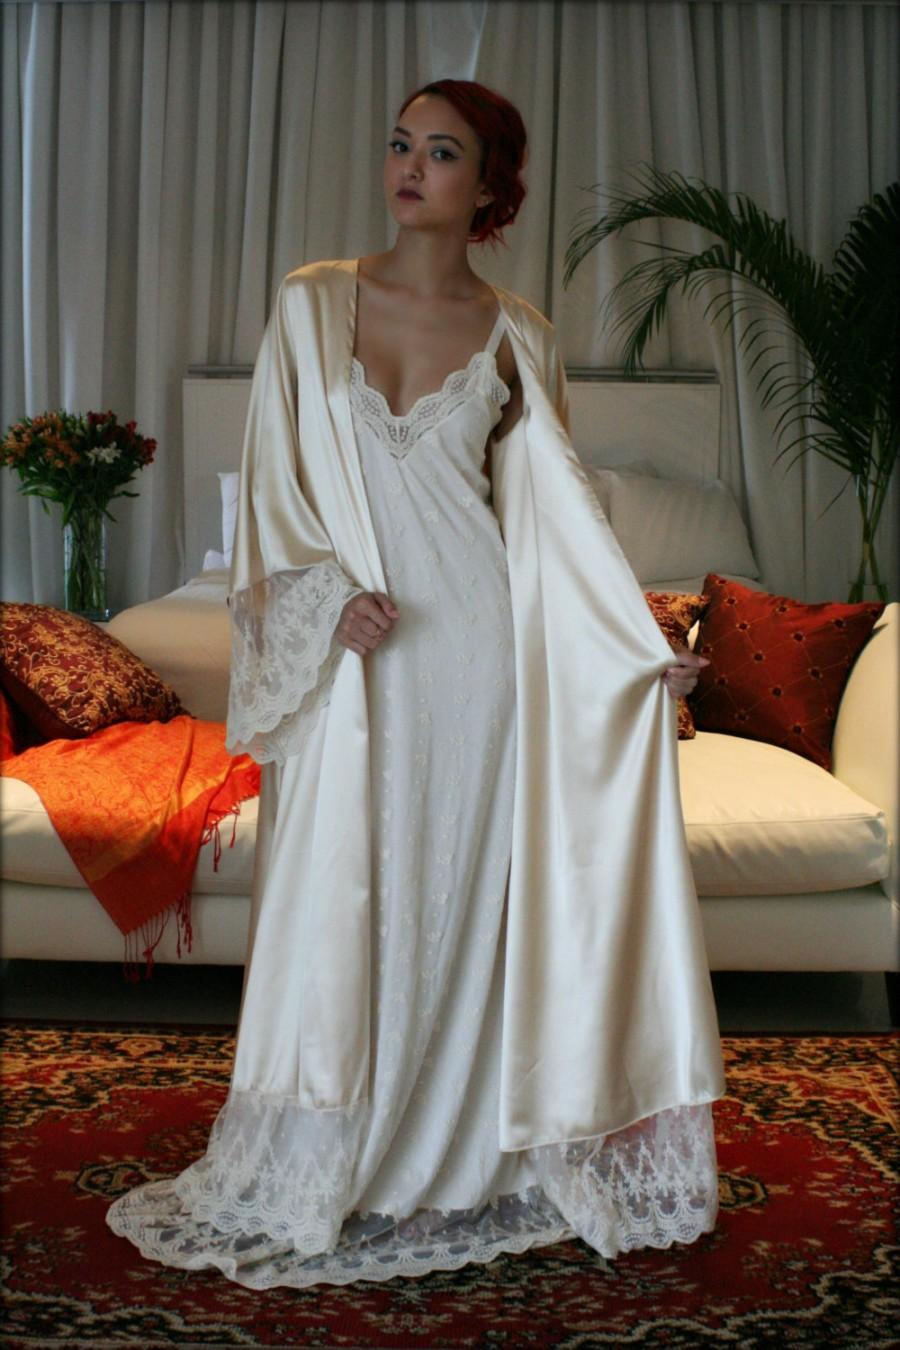 a26a7042e Fiona Champagne Satin Bridal Wedding Robe Bridal Lingerie Wedding Sleepwear  Embroidered French Lace Robe Art Deco Luxury Lingerie